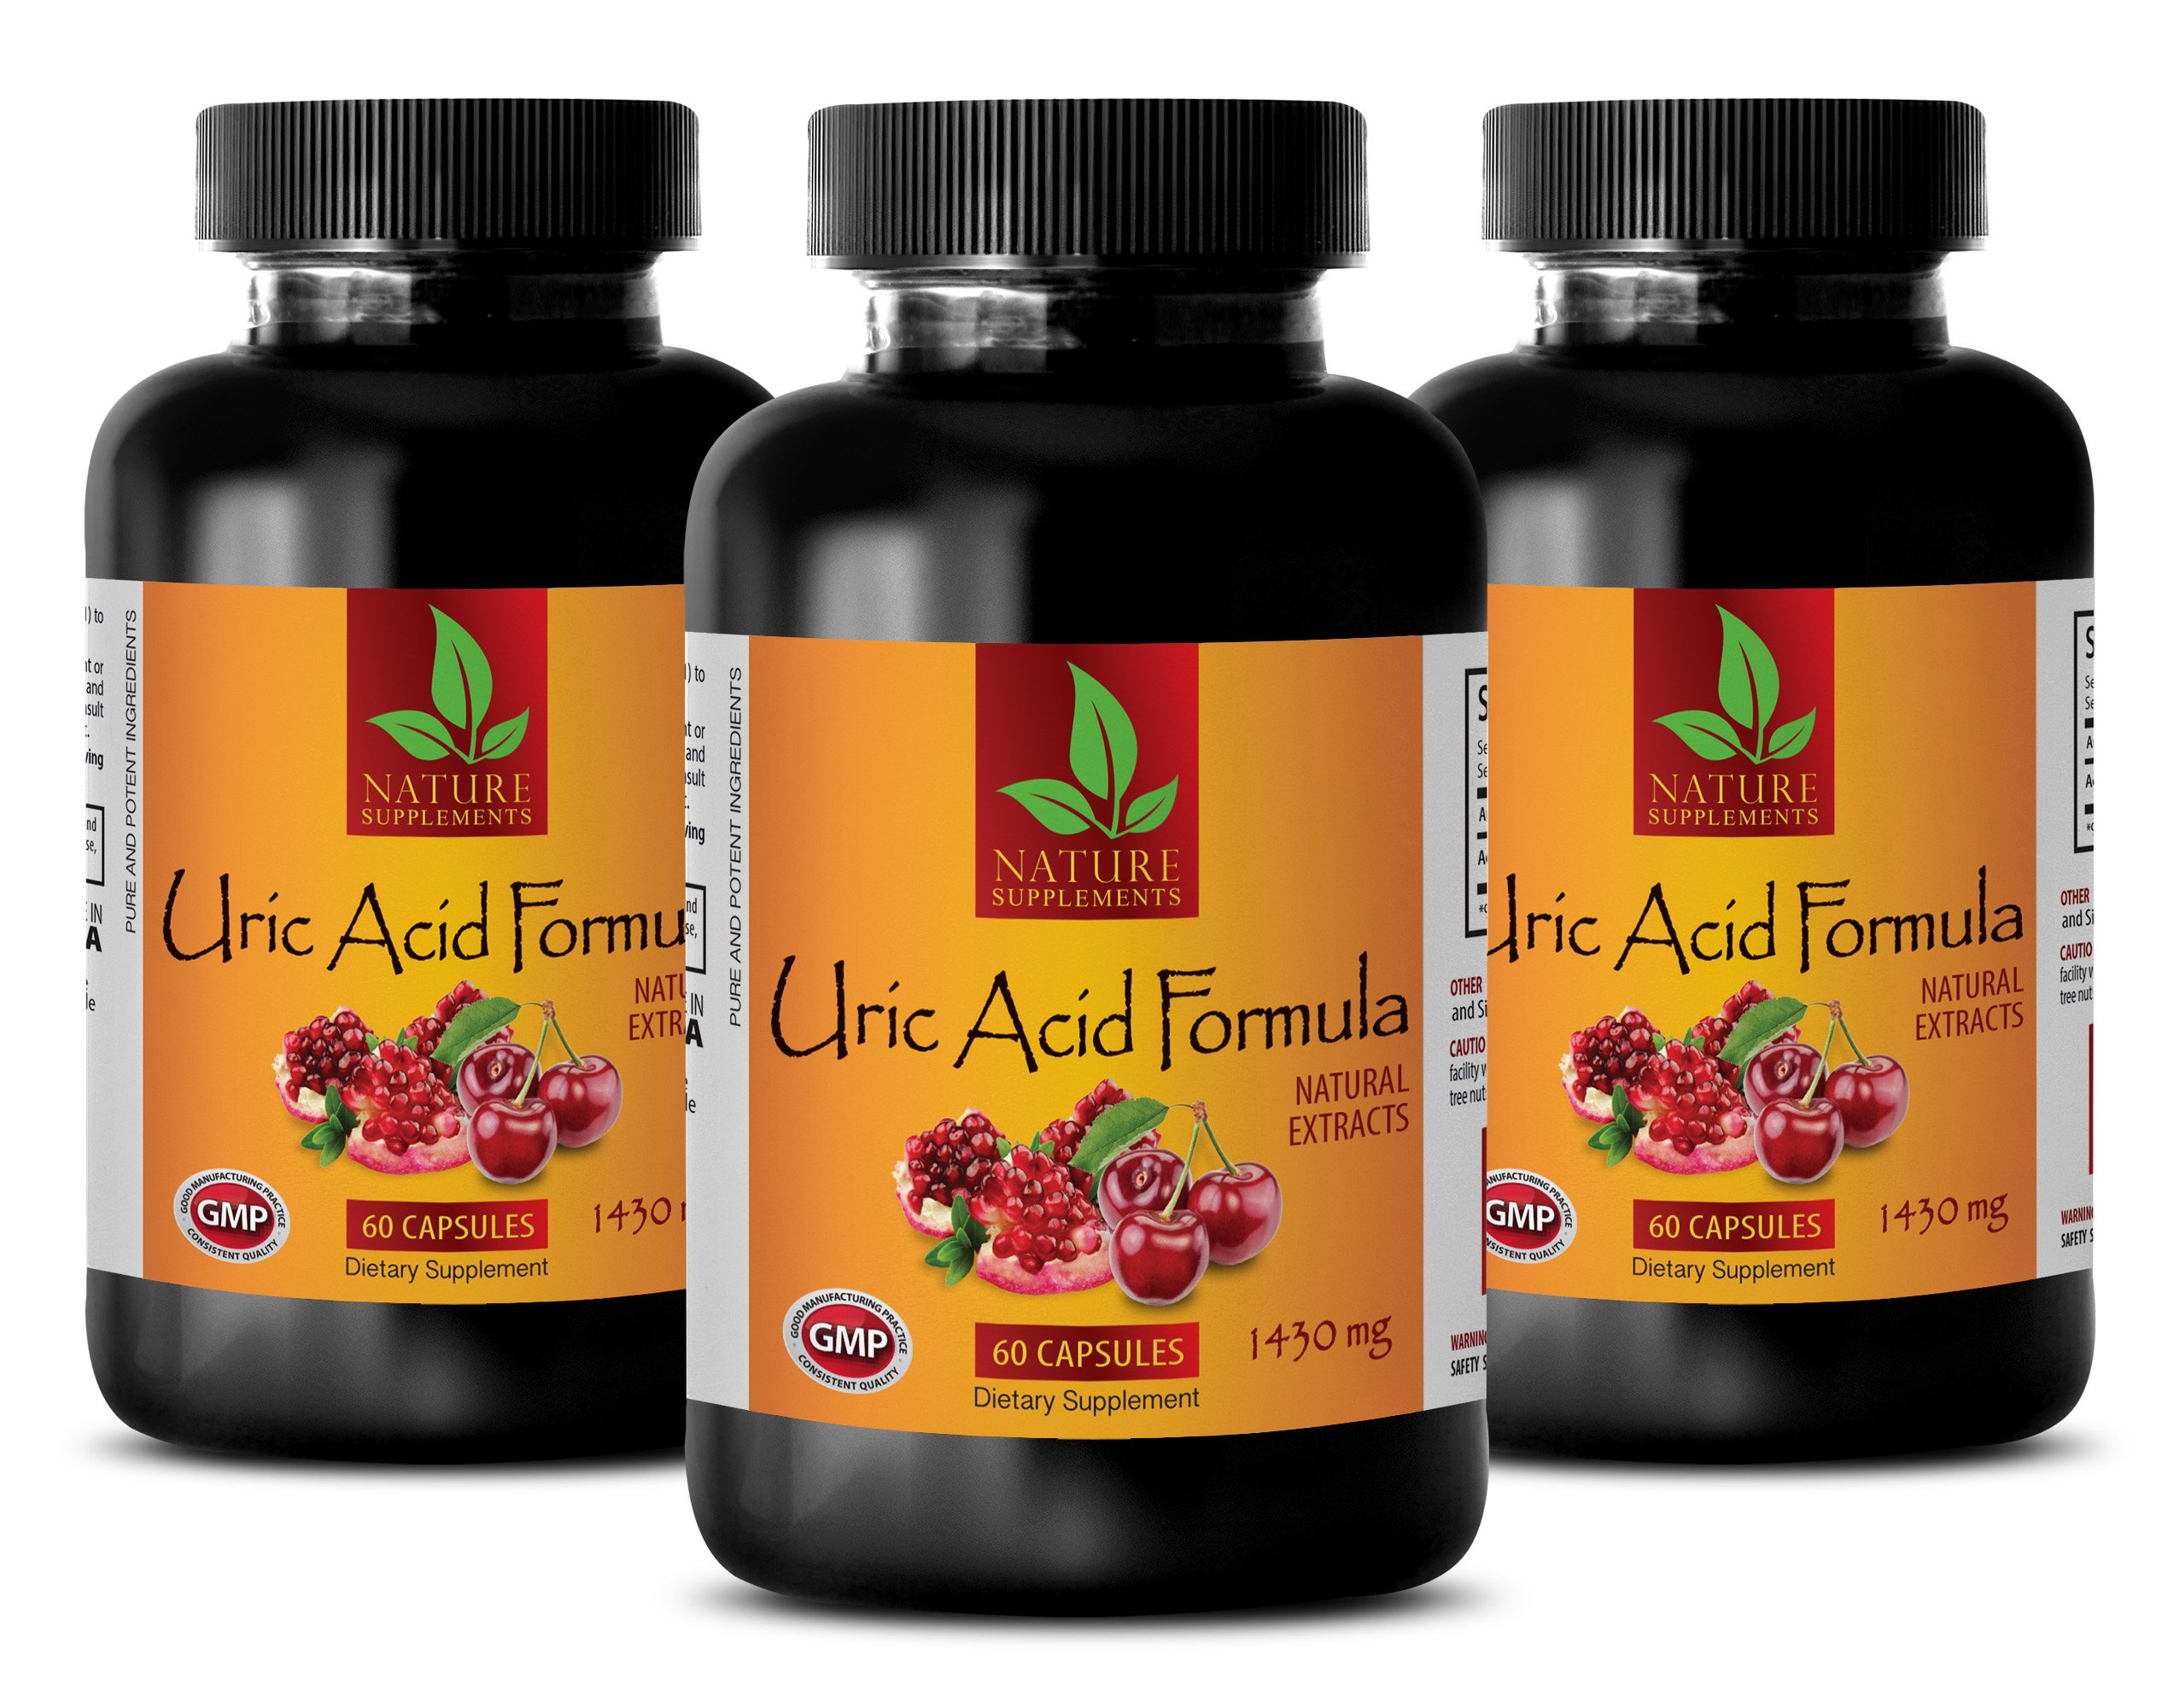 Brain Memory Pills - URIC Acid Formula - Natural EXTRACTS - Green Tea Quality - 3 Bottles (180 Capsules)